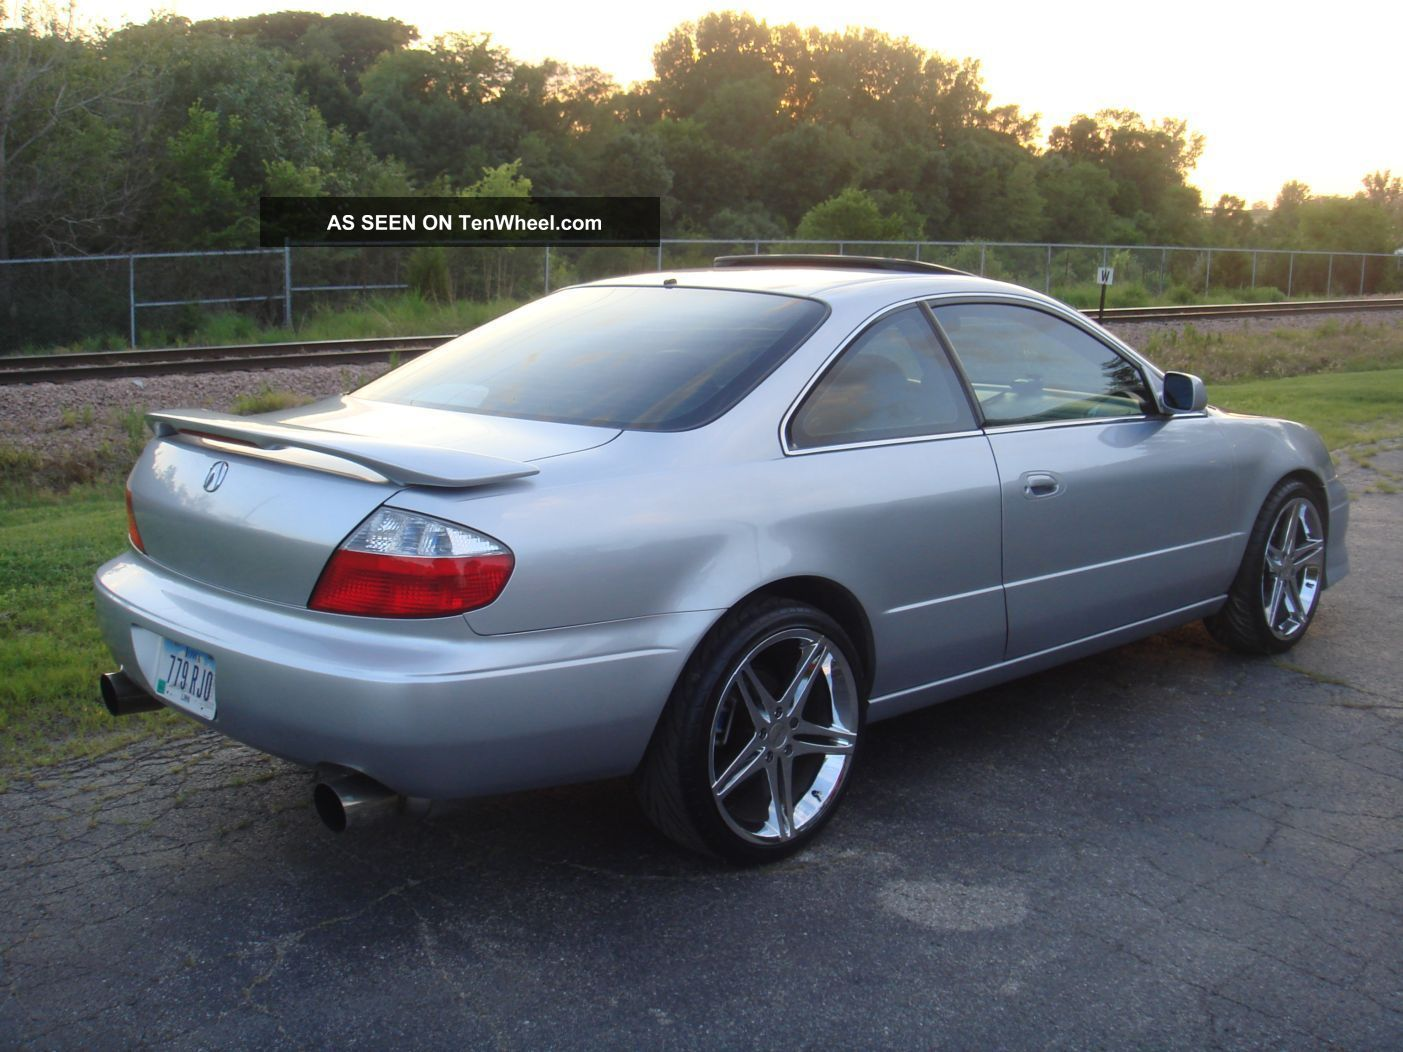 2003 Acura Cl Image 15